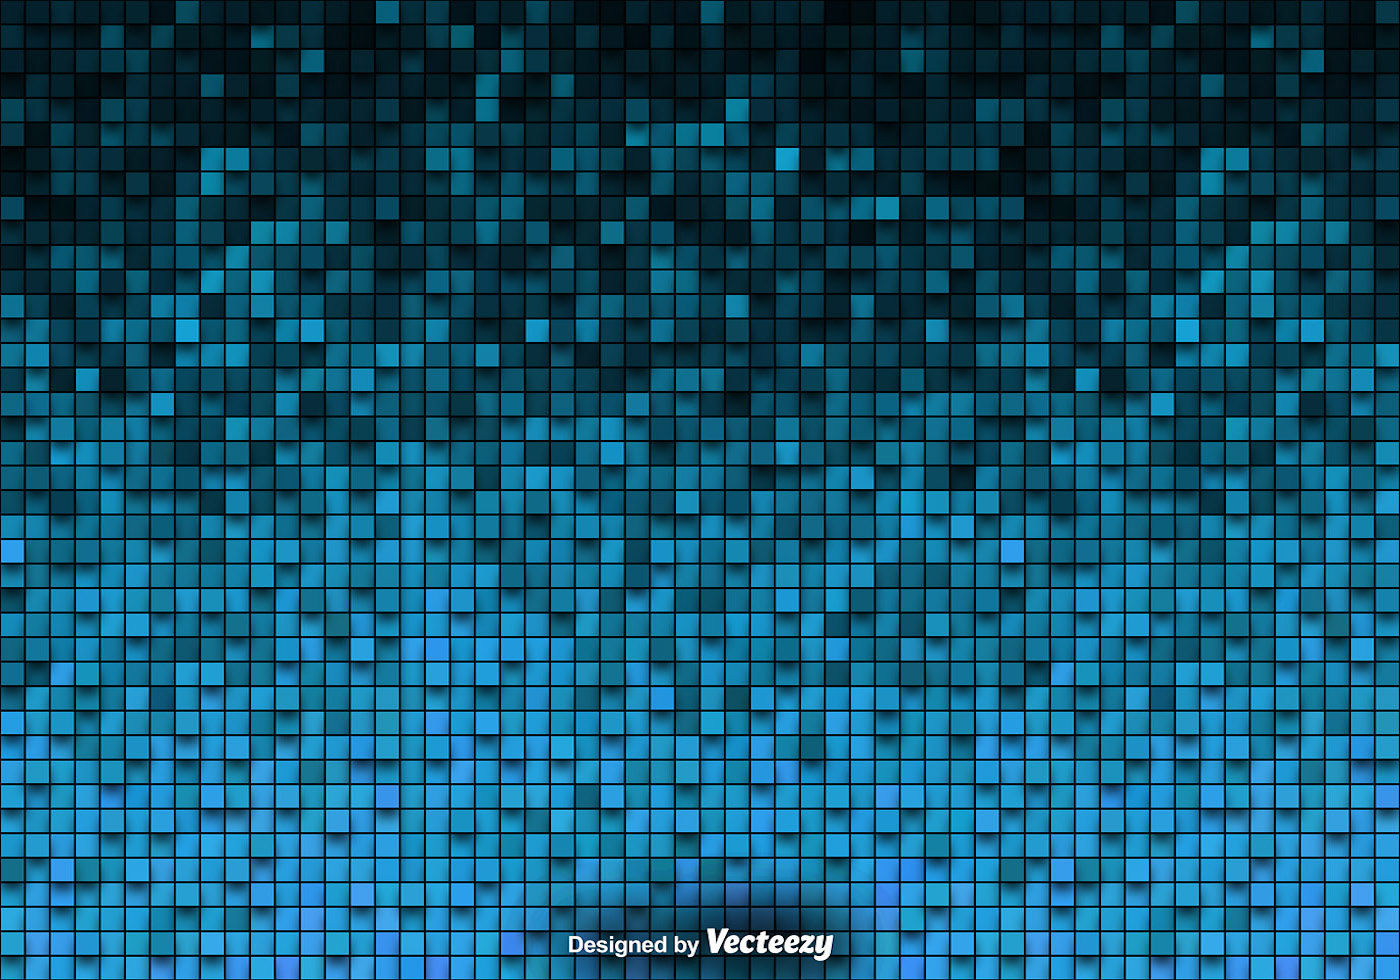 Tiled Background Vector Blue Tiles - Download Free Vector Art, Stock ...